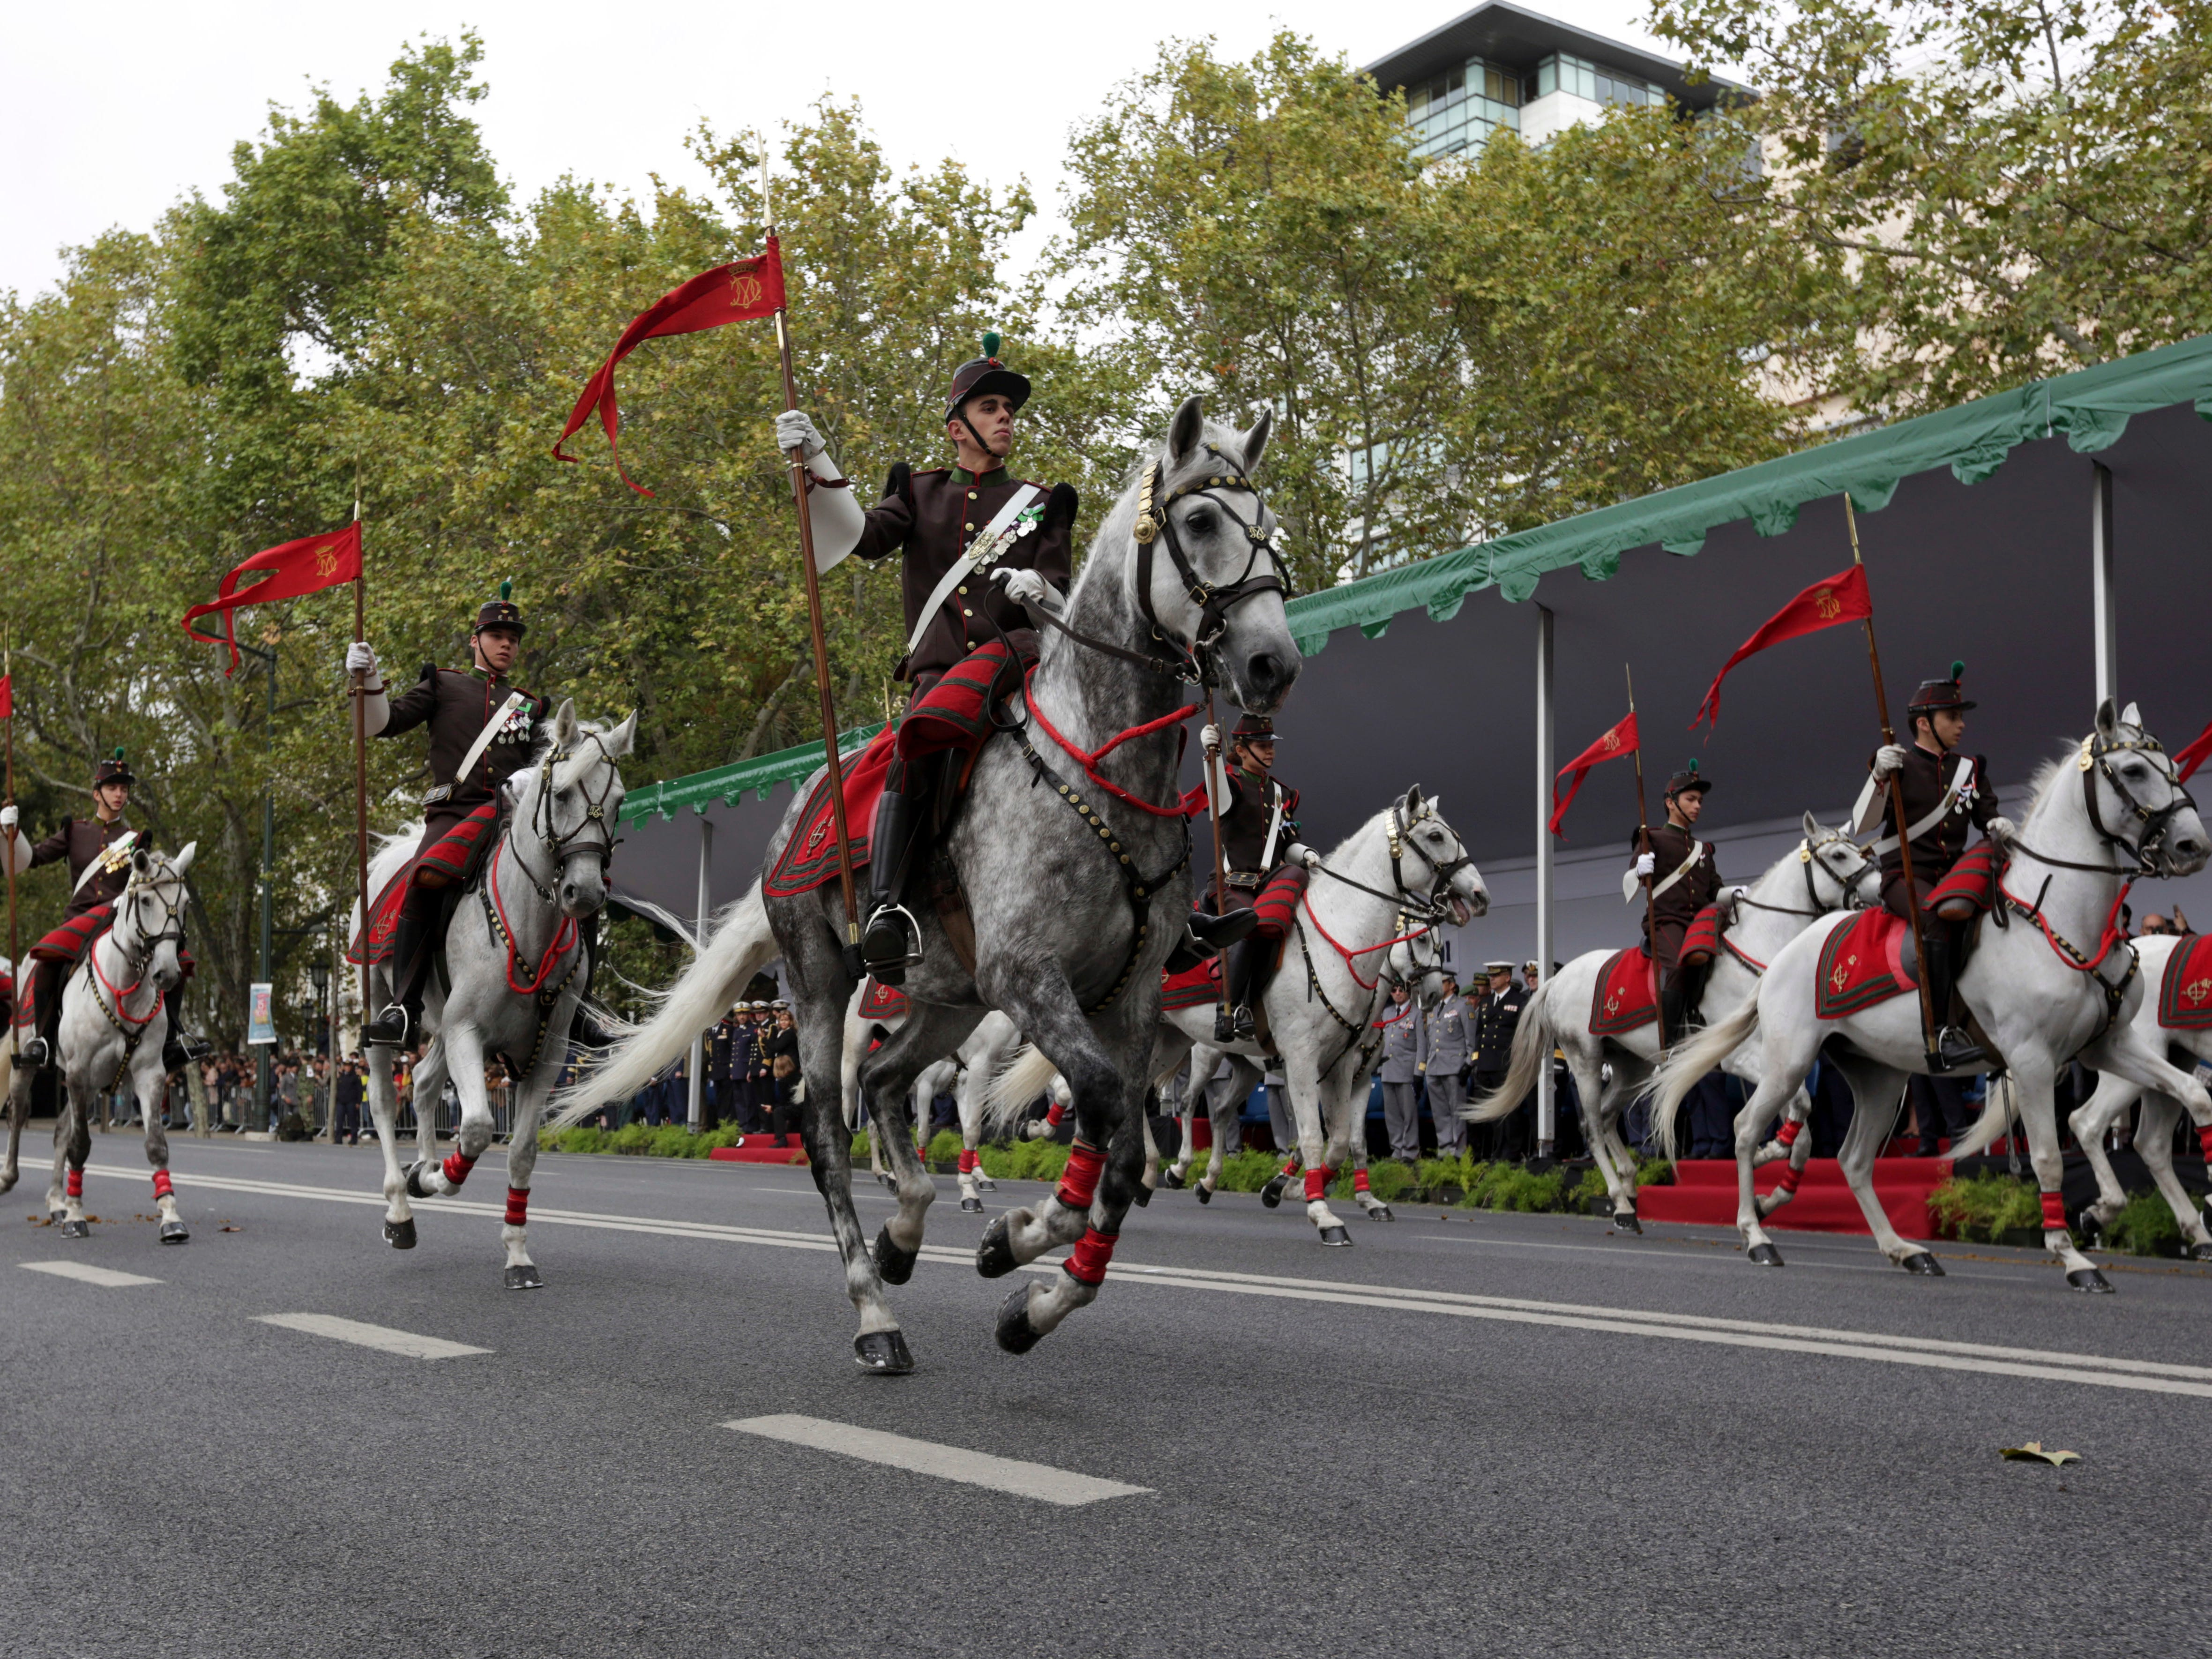 Students of the Portuguese Army School ride in a military parade in Lisbon to commemorate the centenary of the end of World War I, Sunday, Nov. 4, 2018.